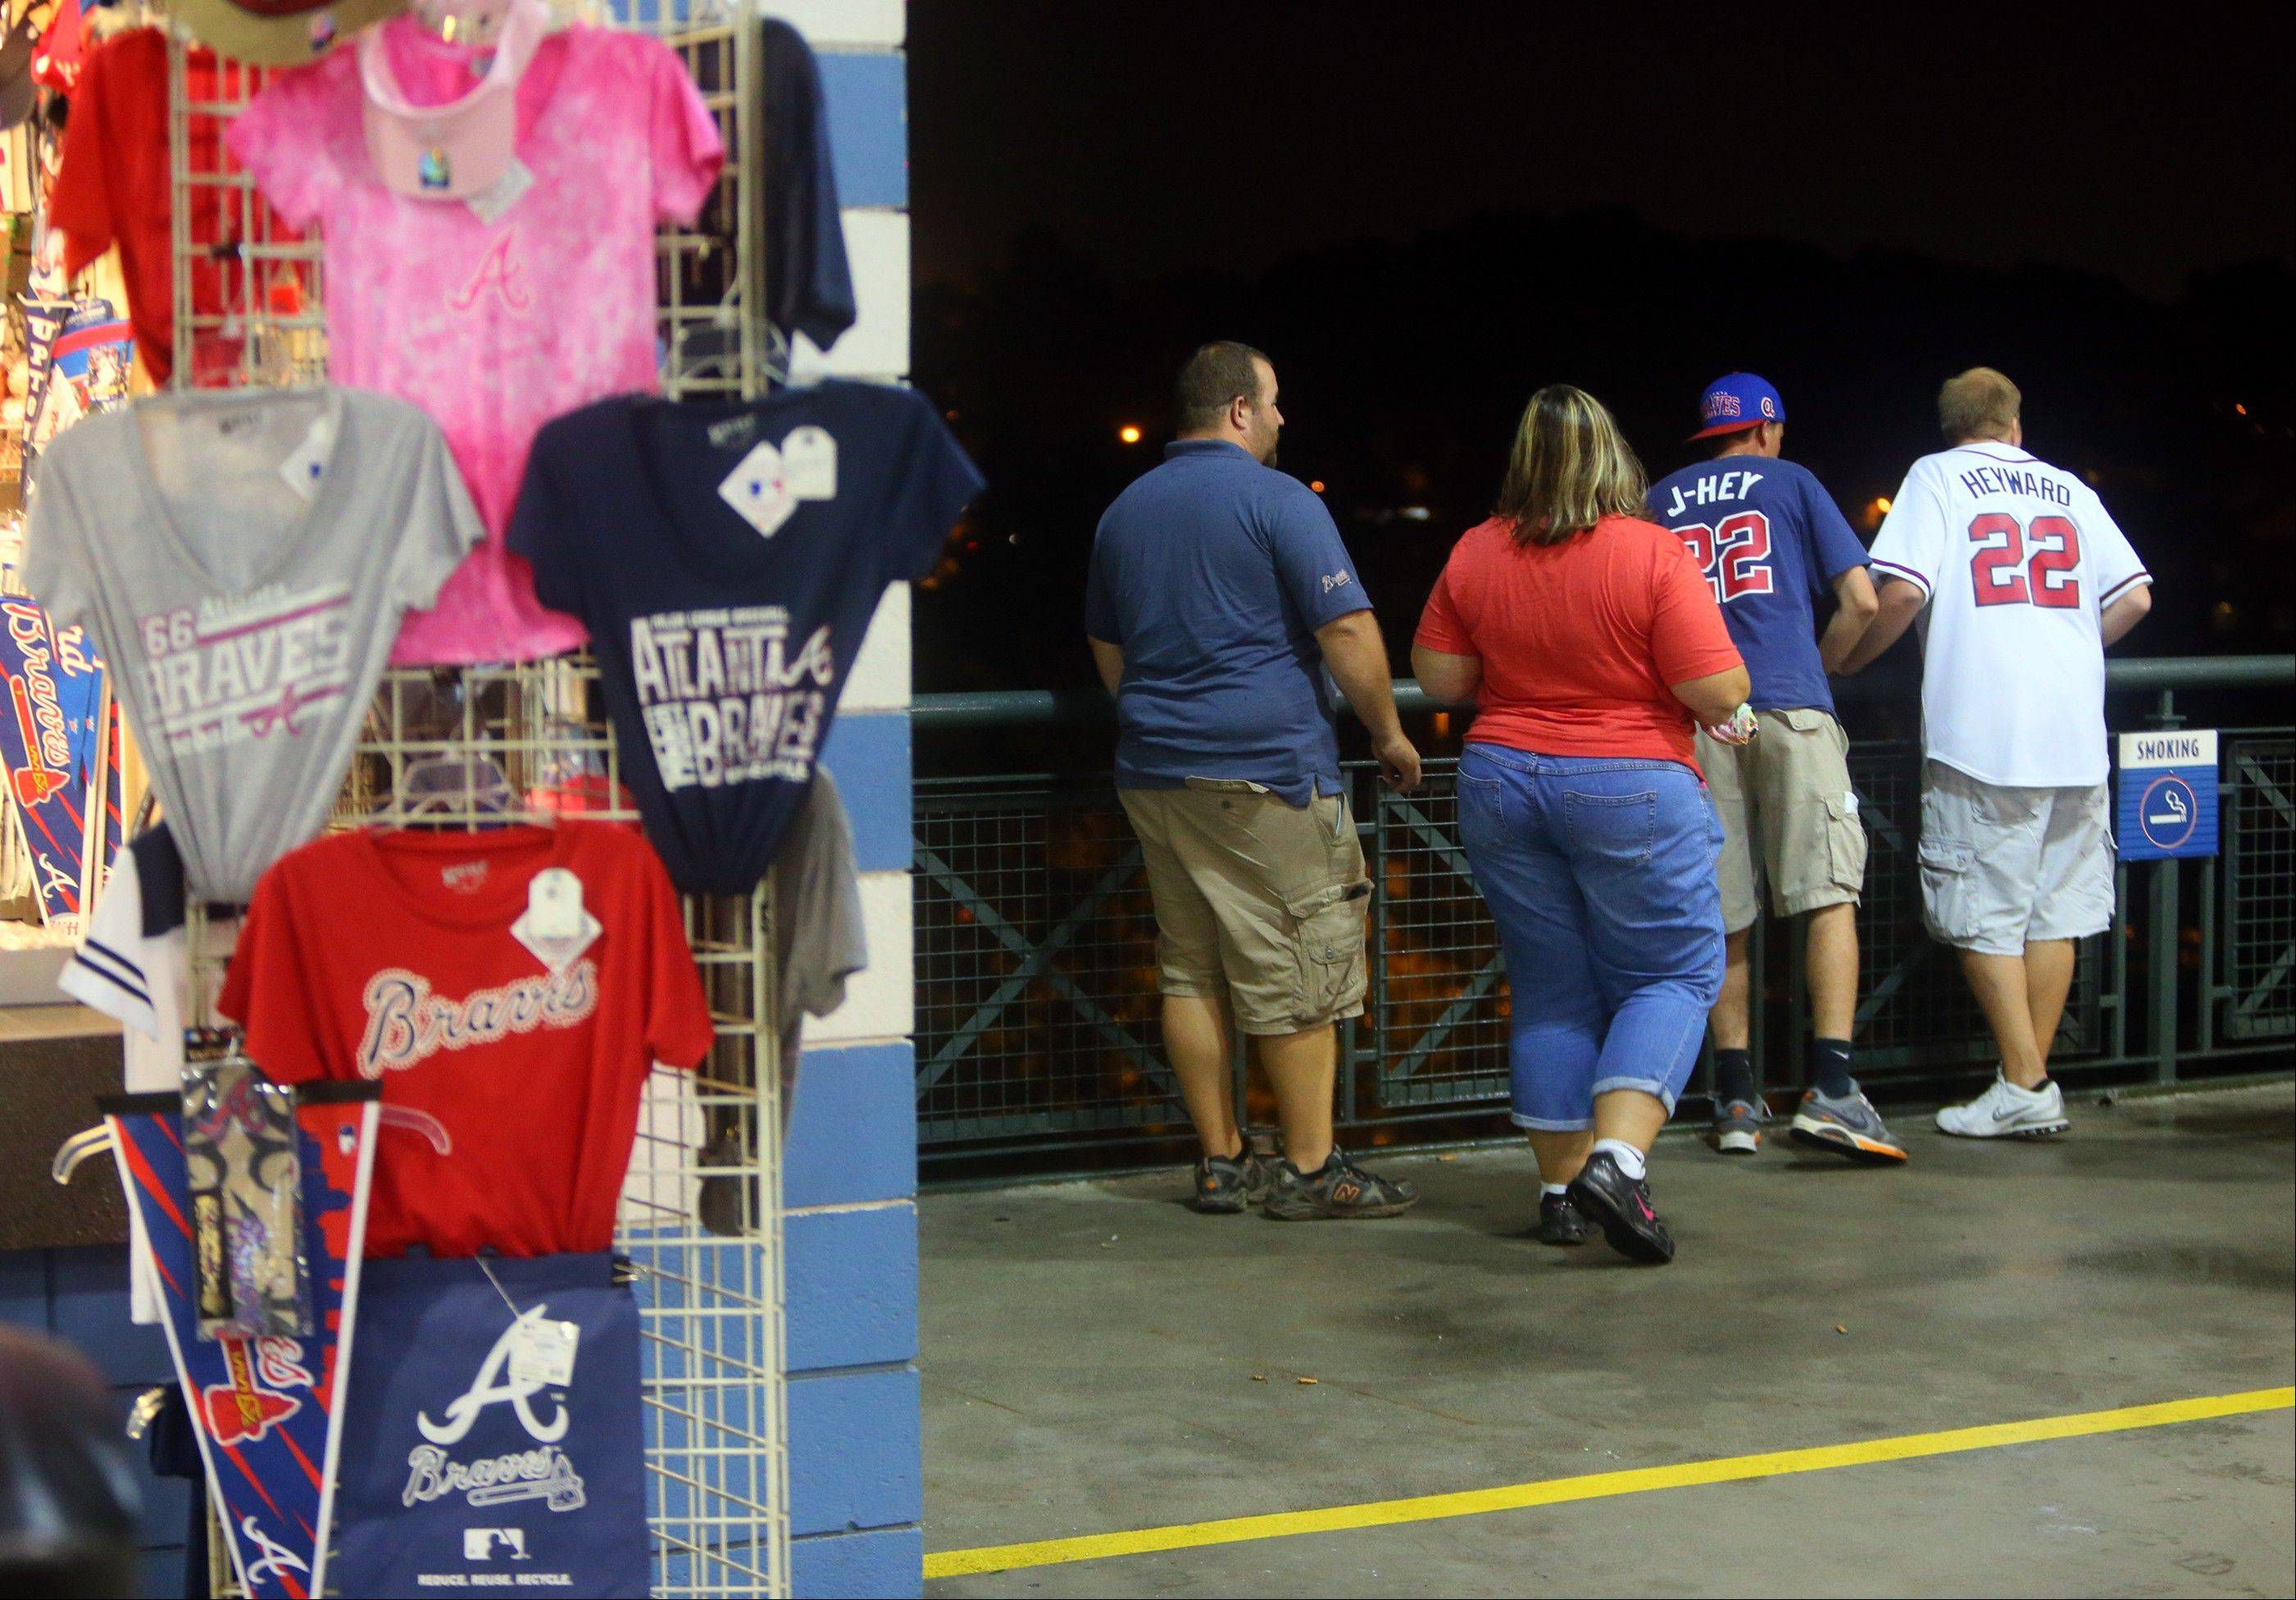 Baseball fans look over a railing at Turner Field near the scene where a man fell 65 feet to his death Monday in Atlanta.